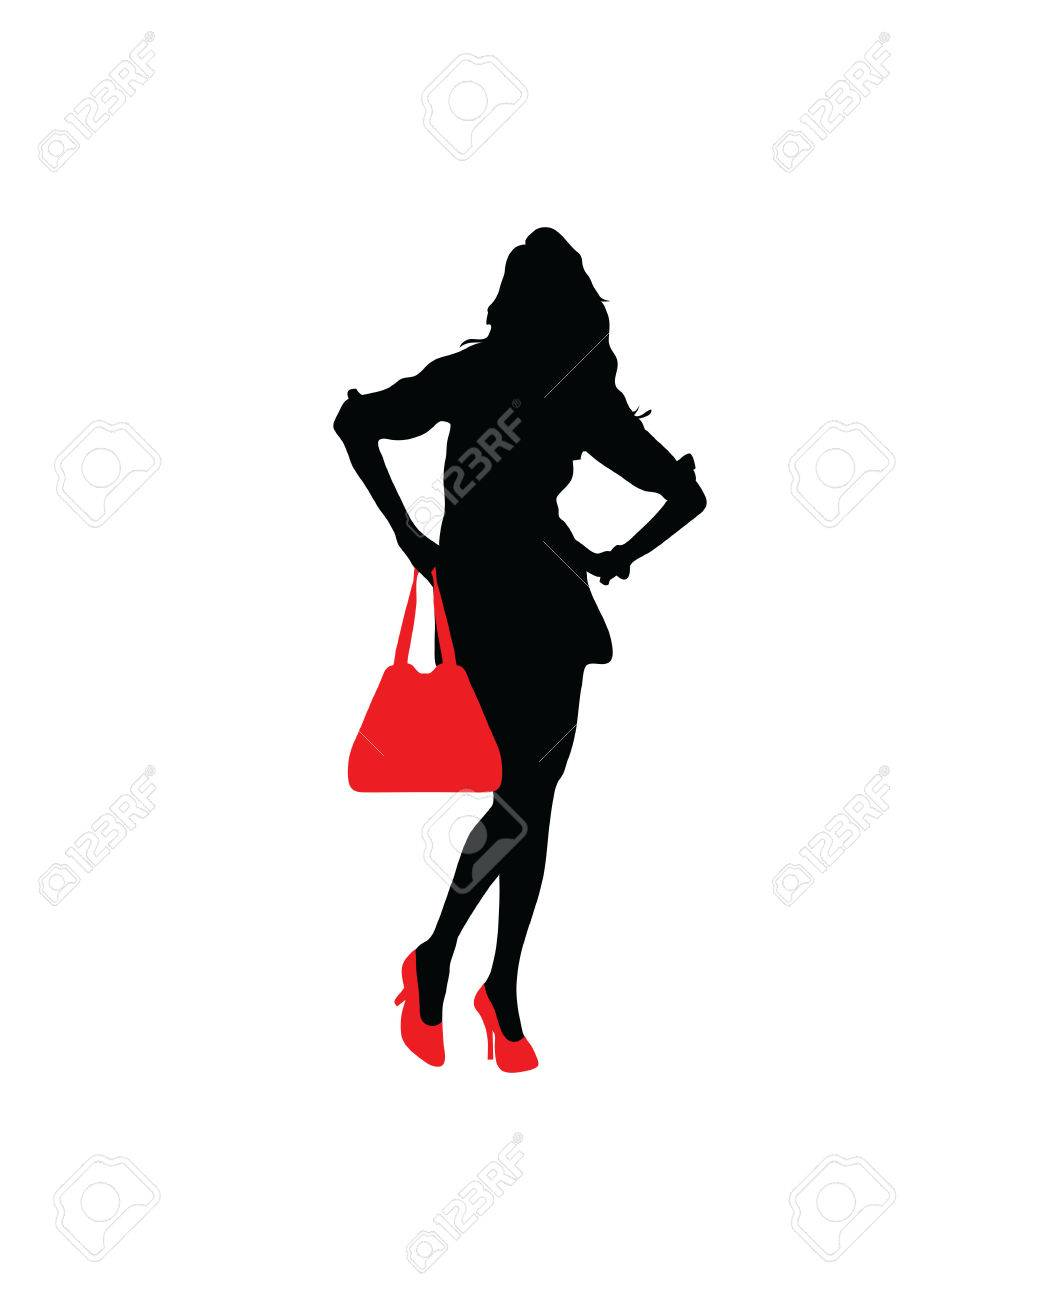 d54919da9 Silhouette of a lady with red shoes and handbags Stock Vector - 62769819